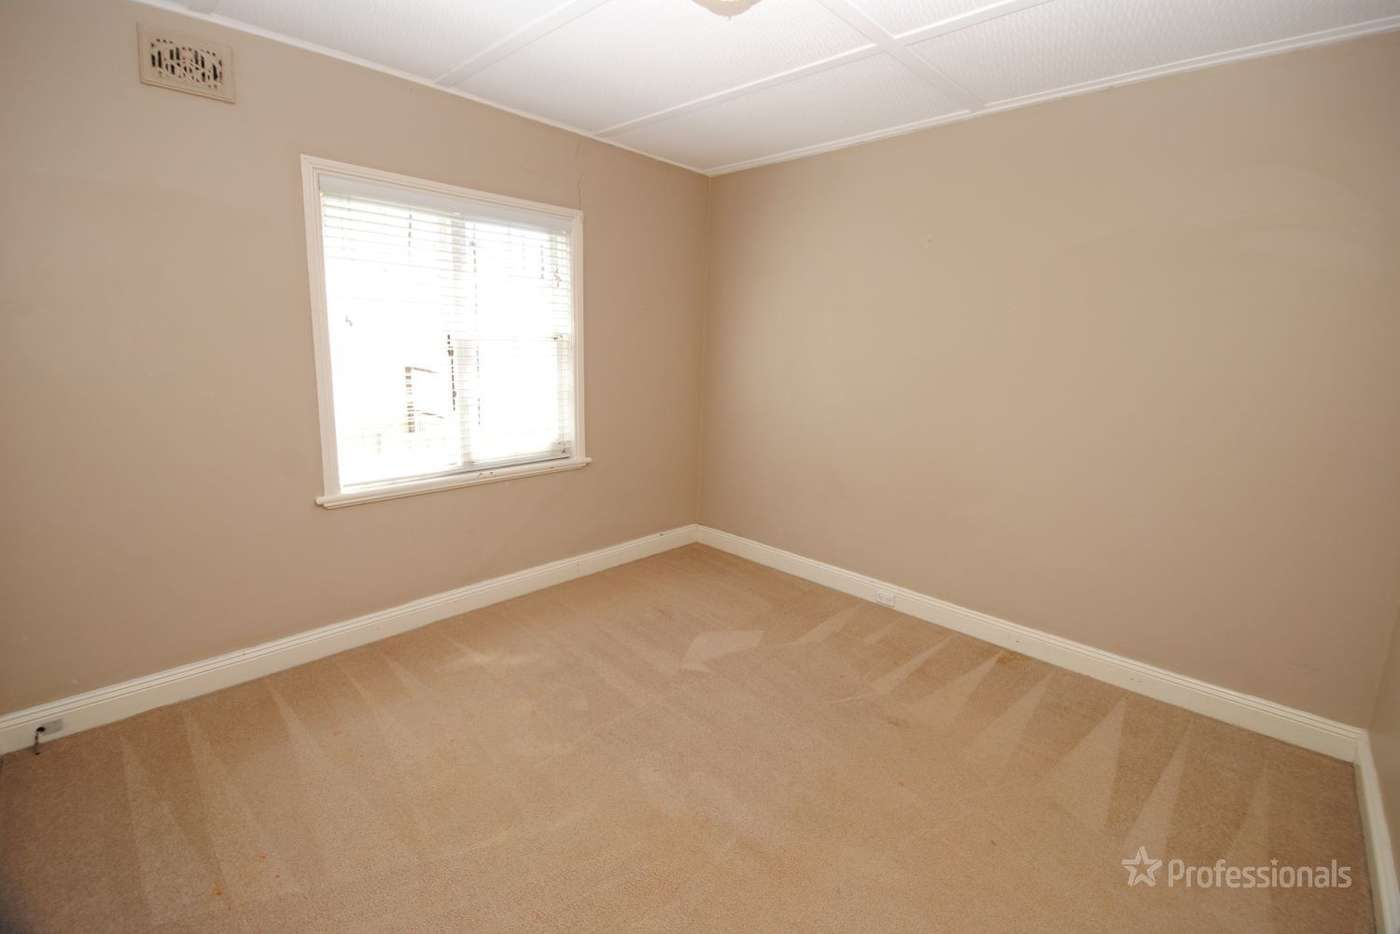 Seventh view of Homely house listing, 12 Chifley Road, Lithgow NSW 2790